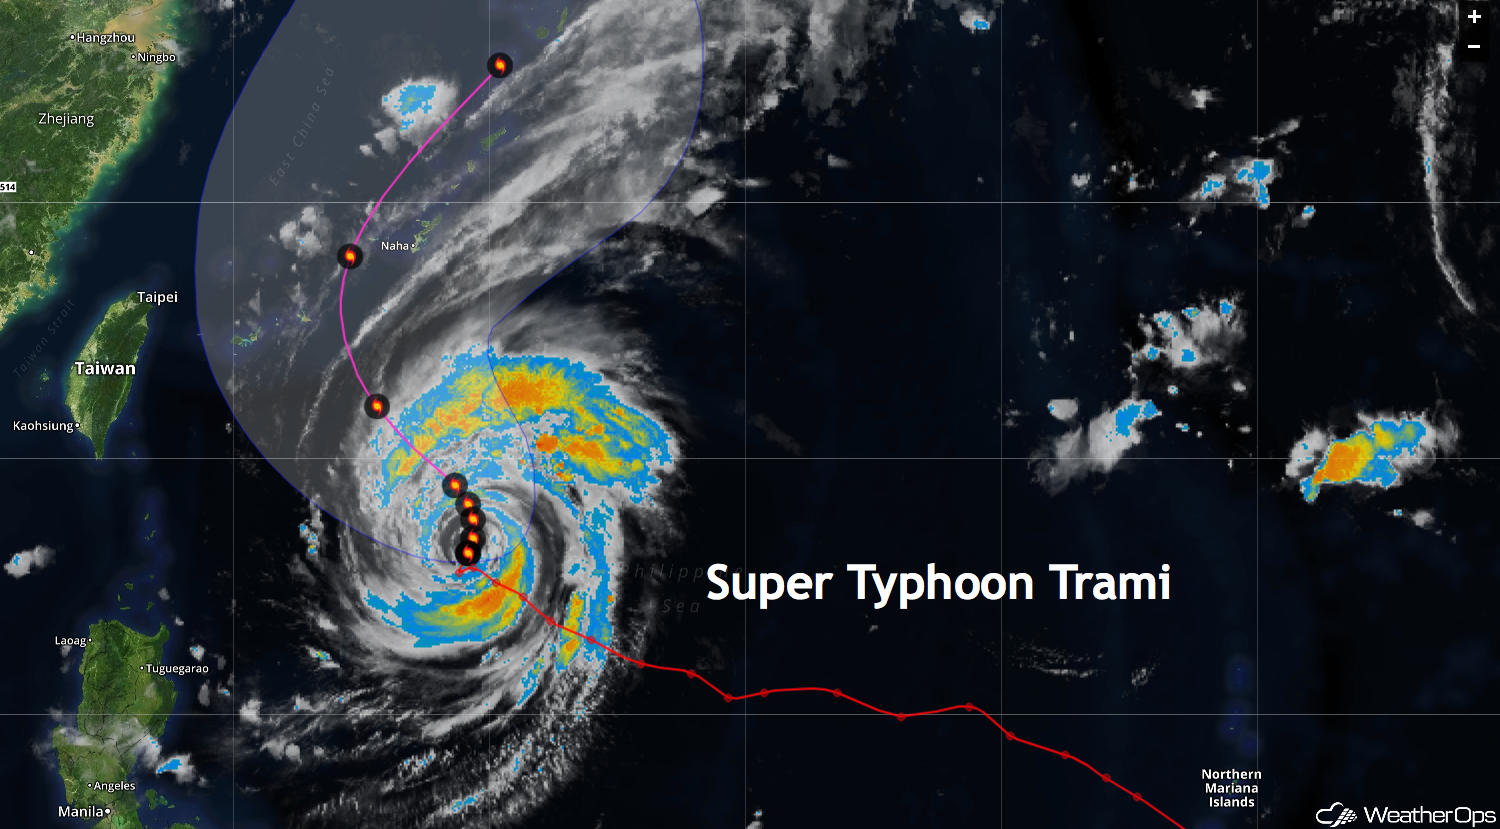 Super Typhoon Trami Heads for Japan